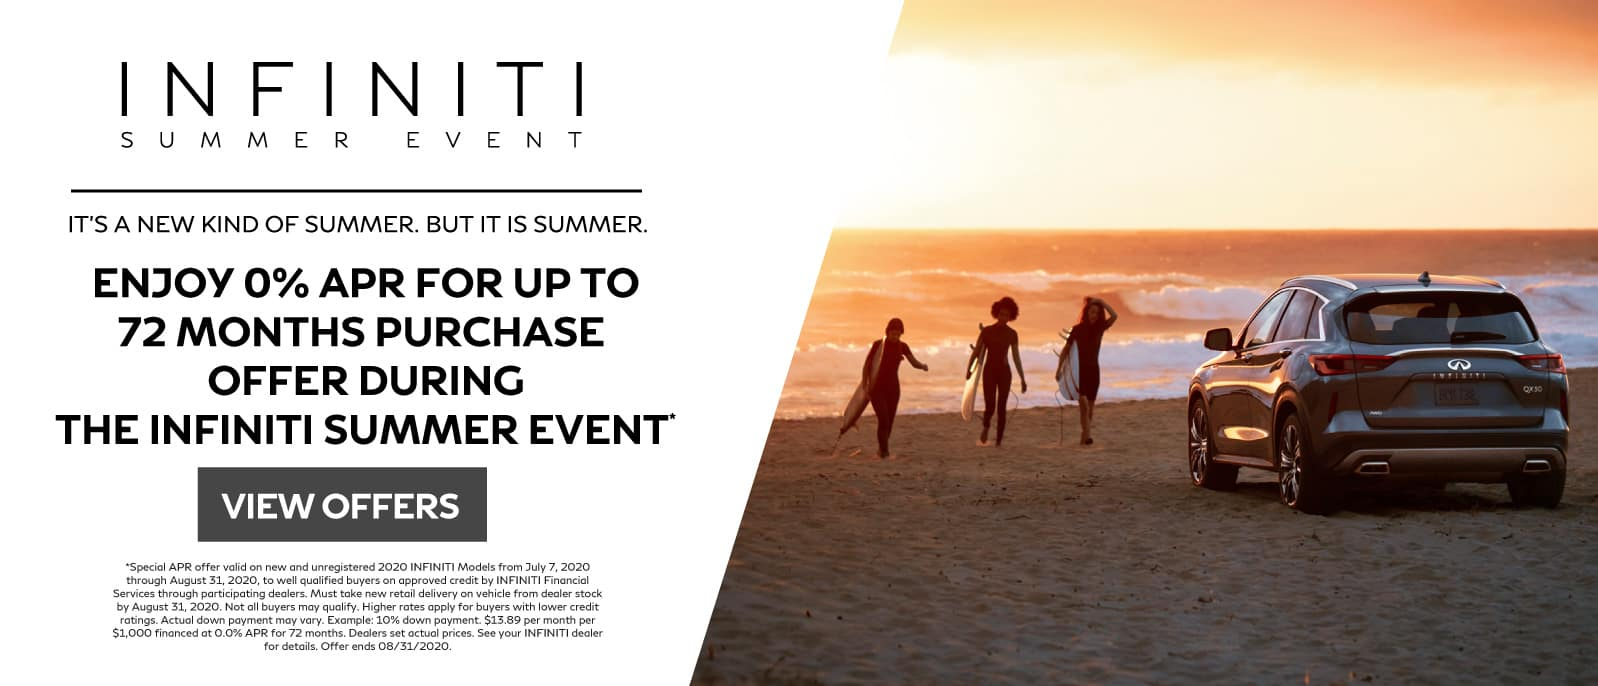 INFINITI SUMMER EVENT ENJOY 0% APR FOR UP TO 72 MONTHS PURCHASE  OFFER DURING THE INFINITI SUMMER EVENT* VIEW OFFERS